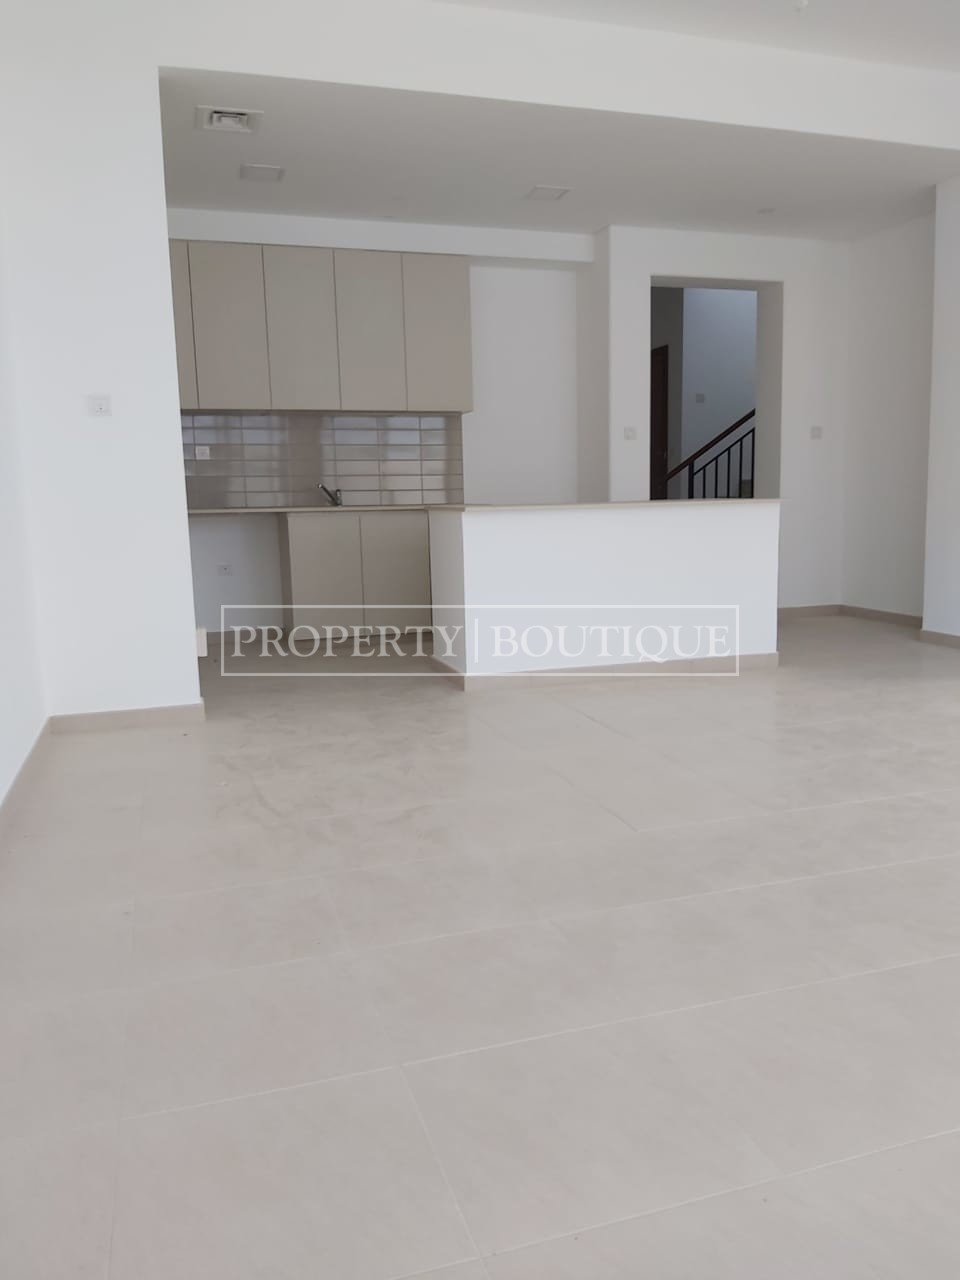 Beautiful 4 Bed + M | Close to the pool | AED 99K - Image 1